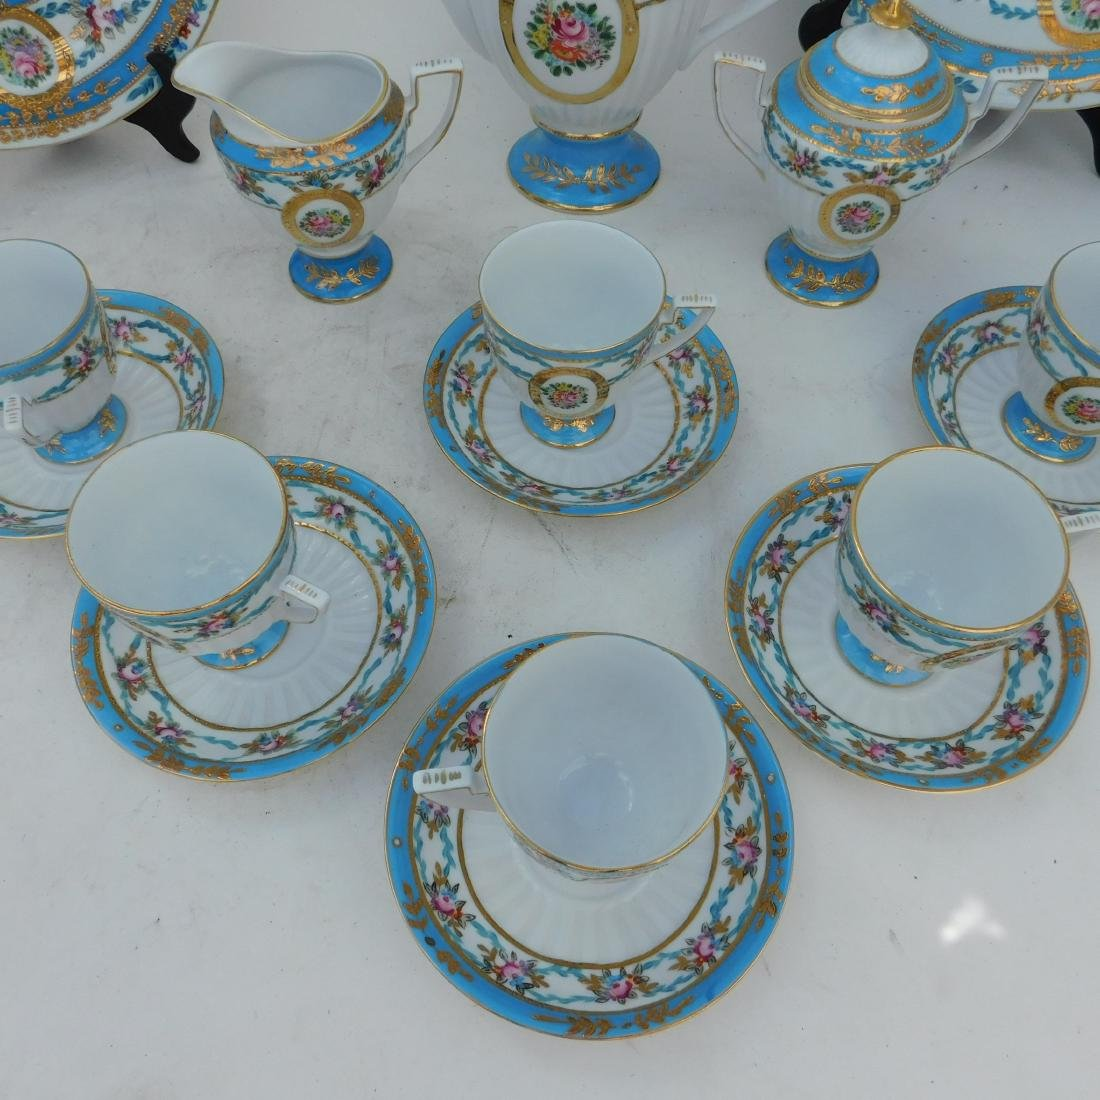 KPM Partial Coffee and Dessert Service In Turquois - 2